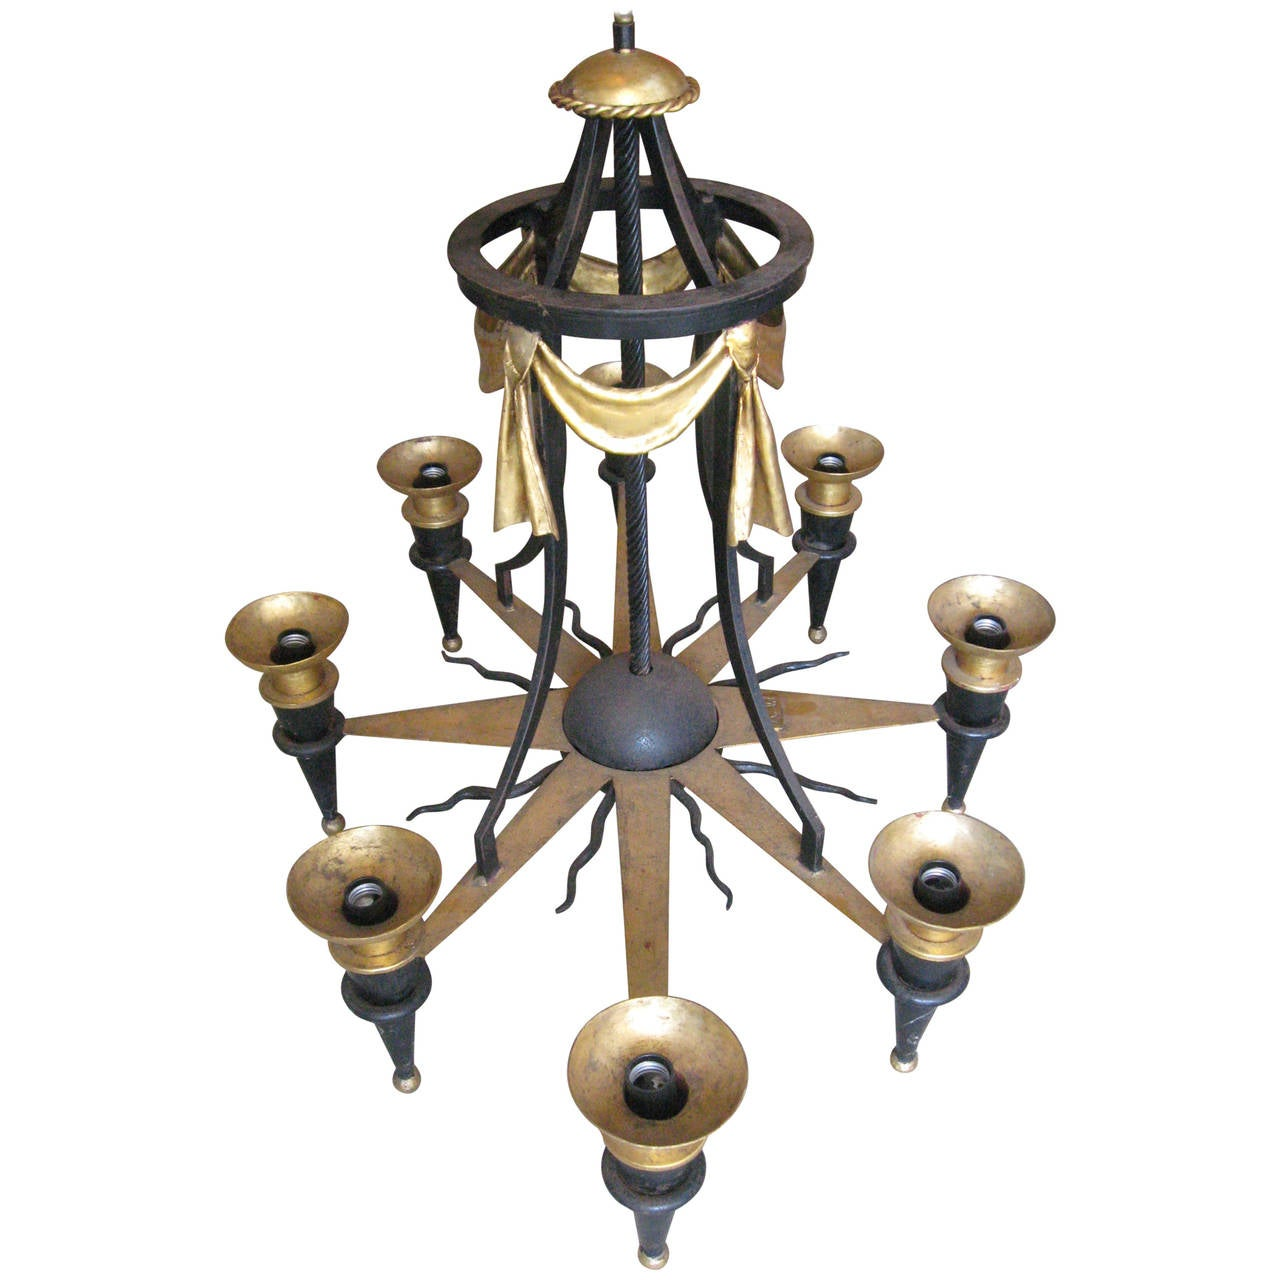 Massive hand forged gilded iron sun chandelier by patrice humbert massive hand forged gilded iron sun chandelier by patrice humbert for sale arubaitofo Image collections